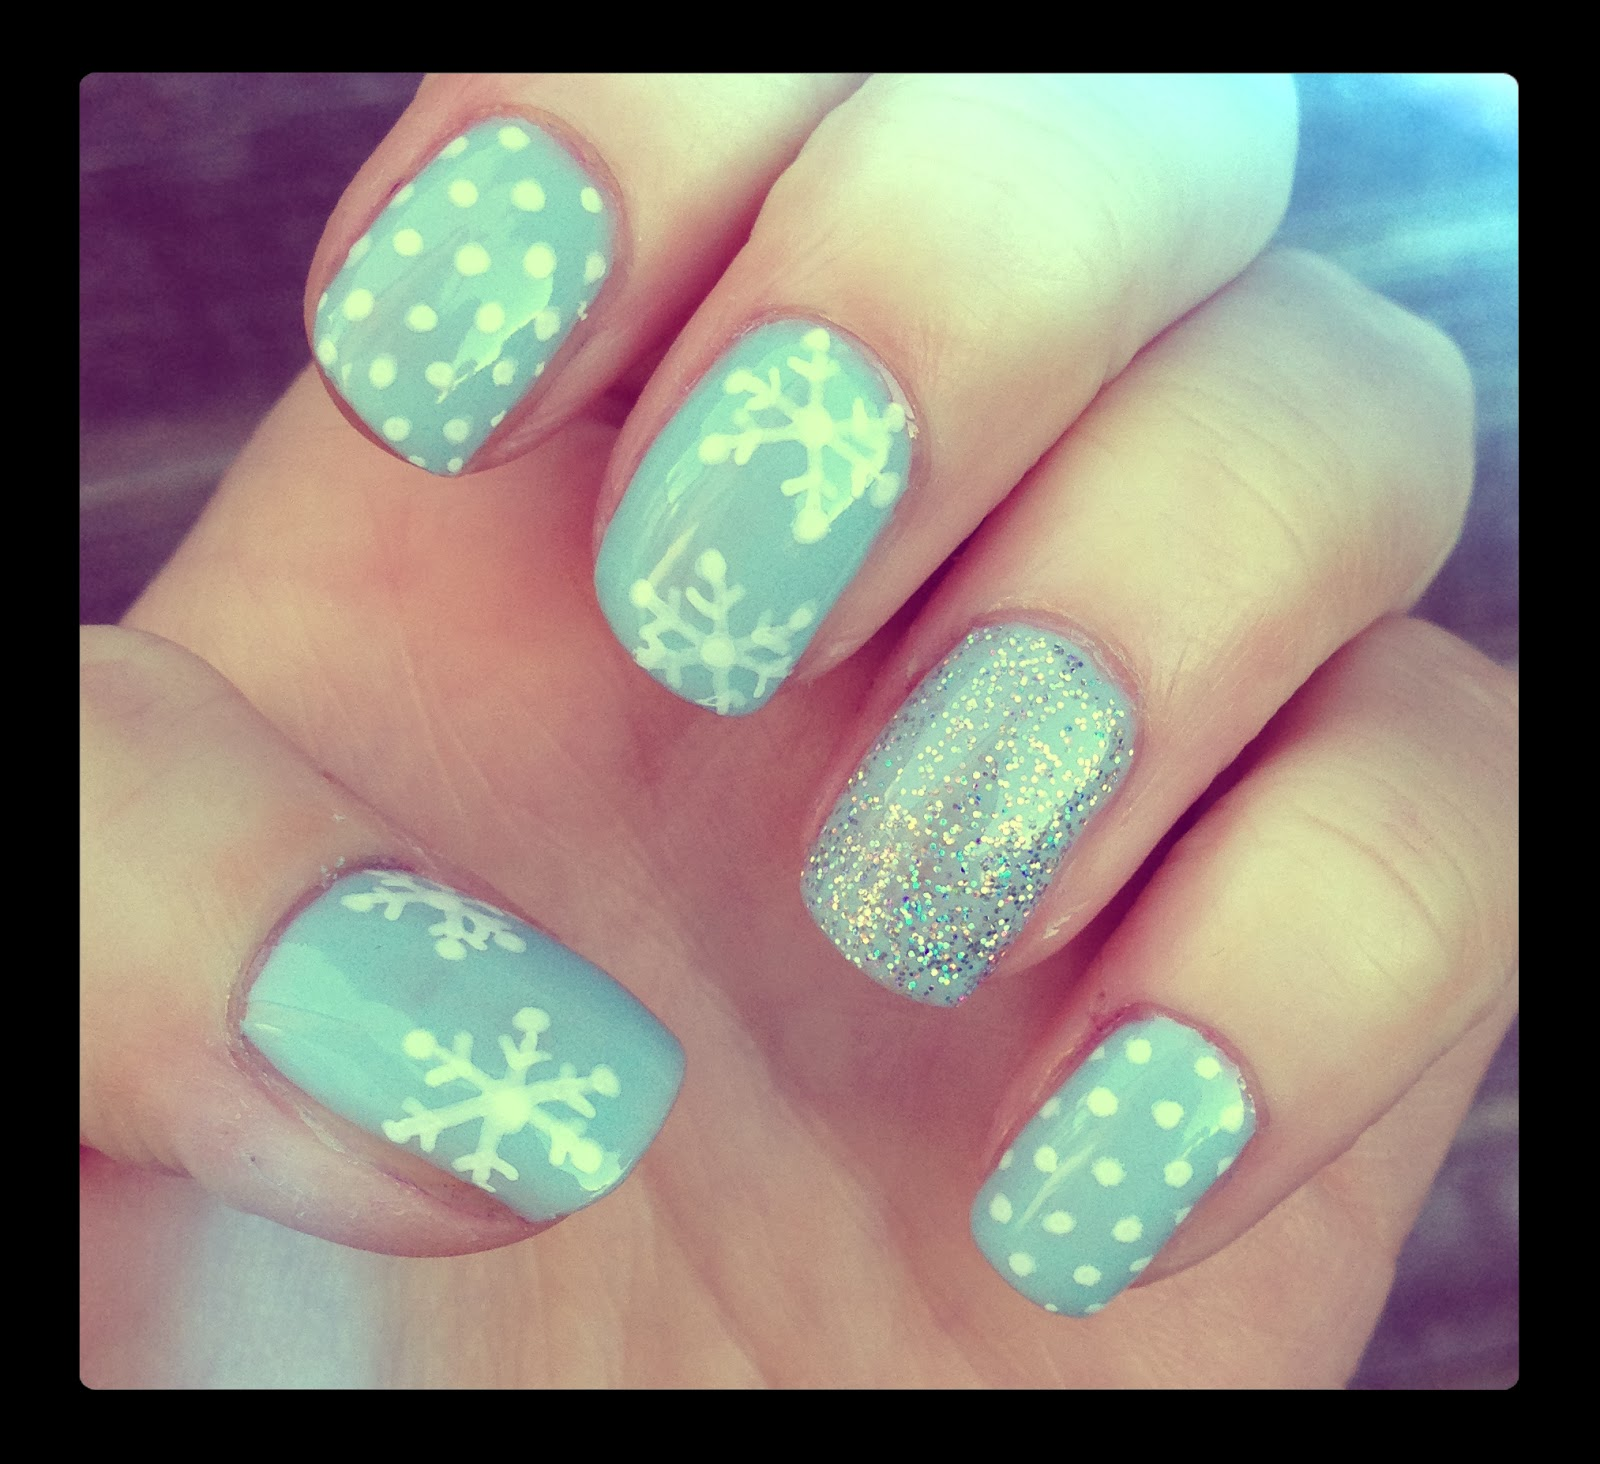 Dahlia Nails: Snowflakes That Stay On My Nose And Eyelashes